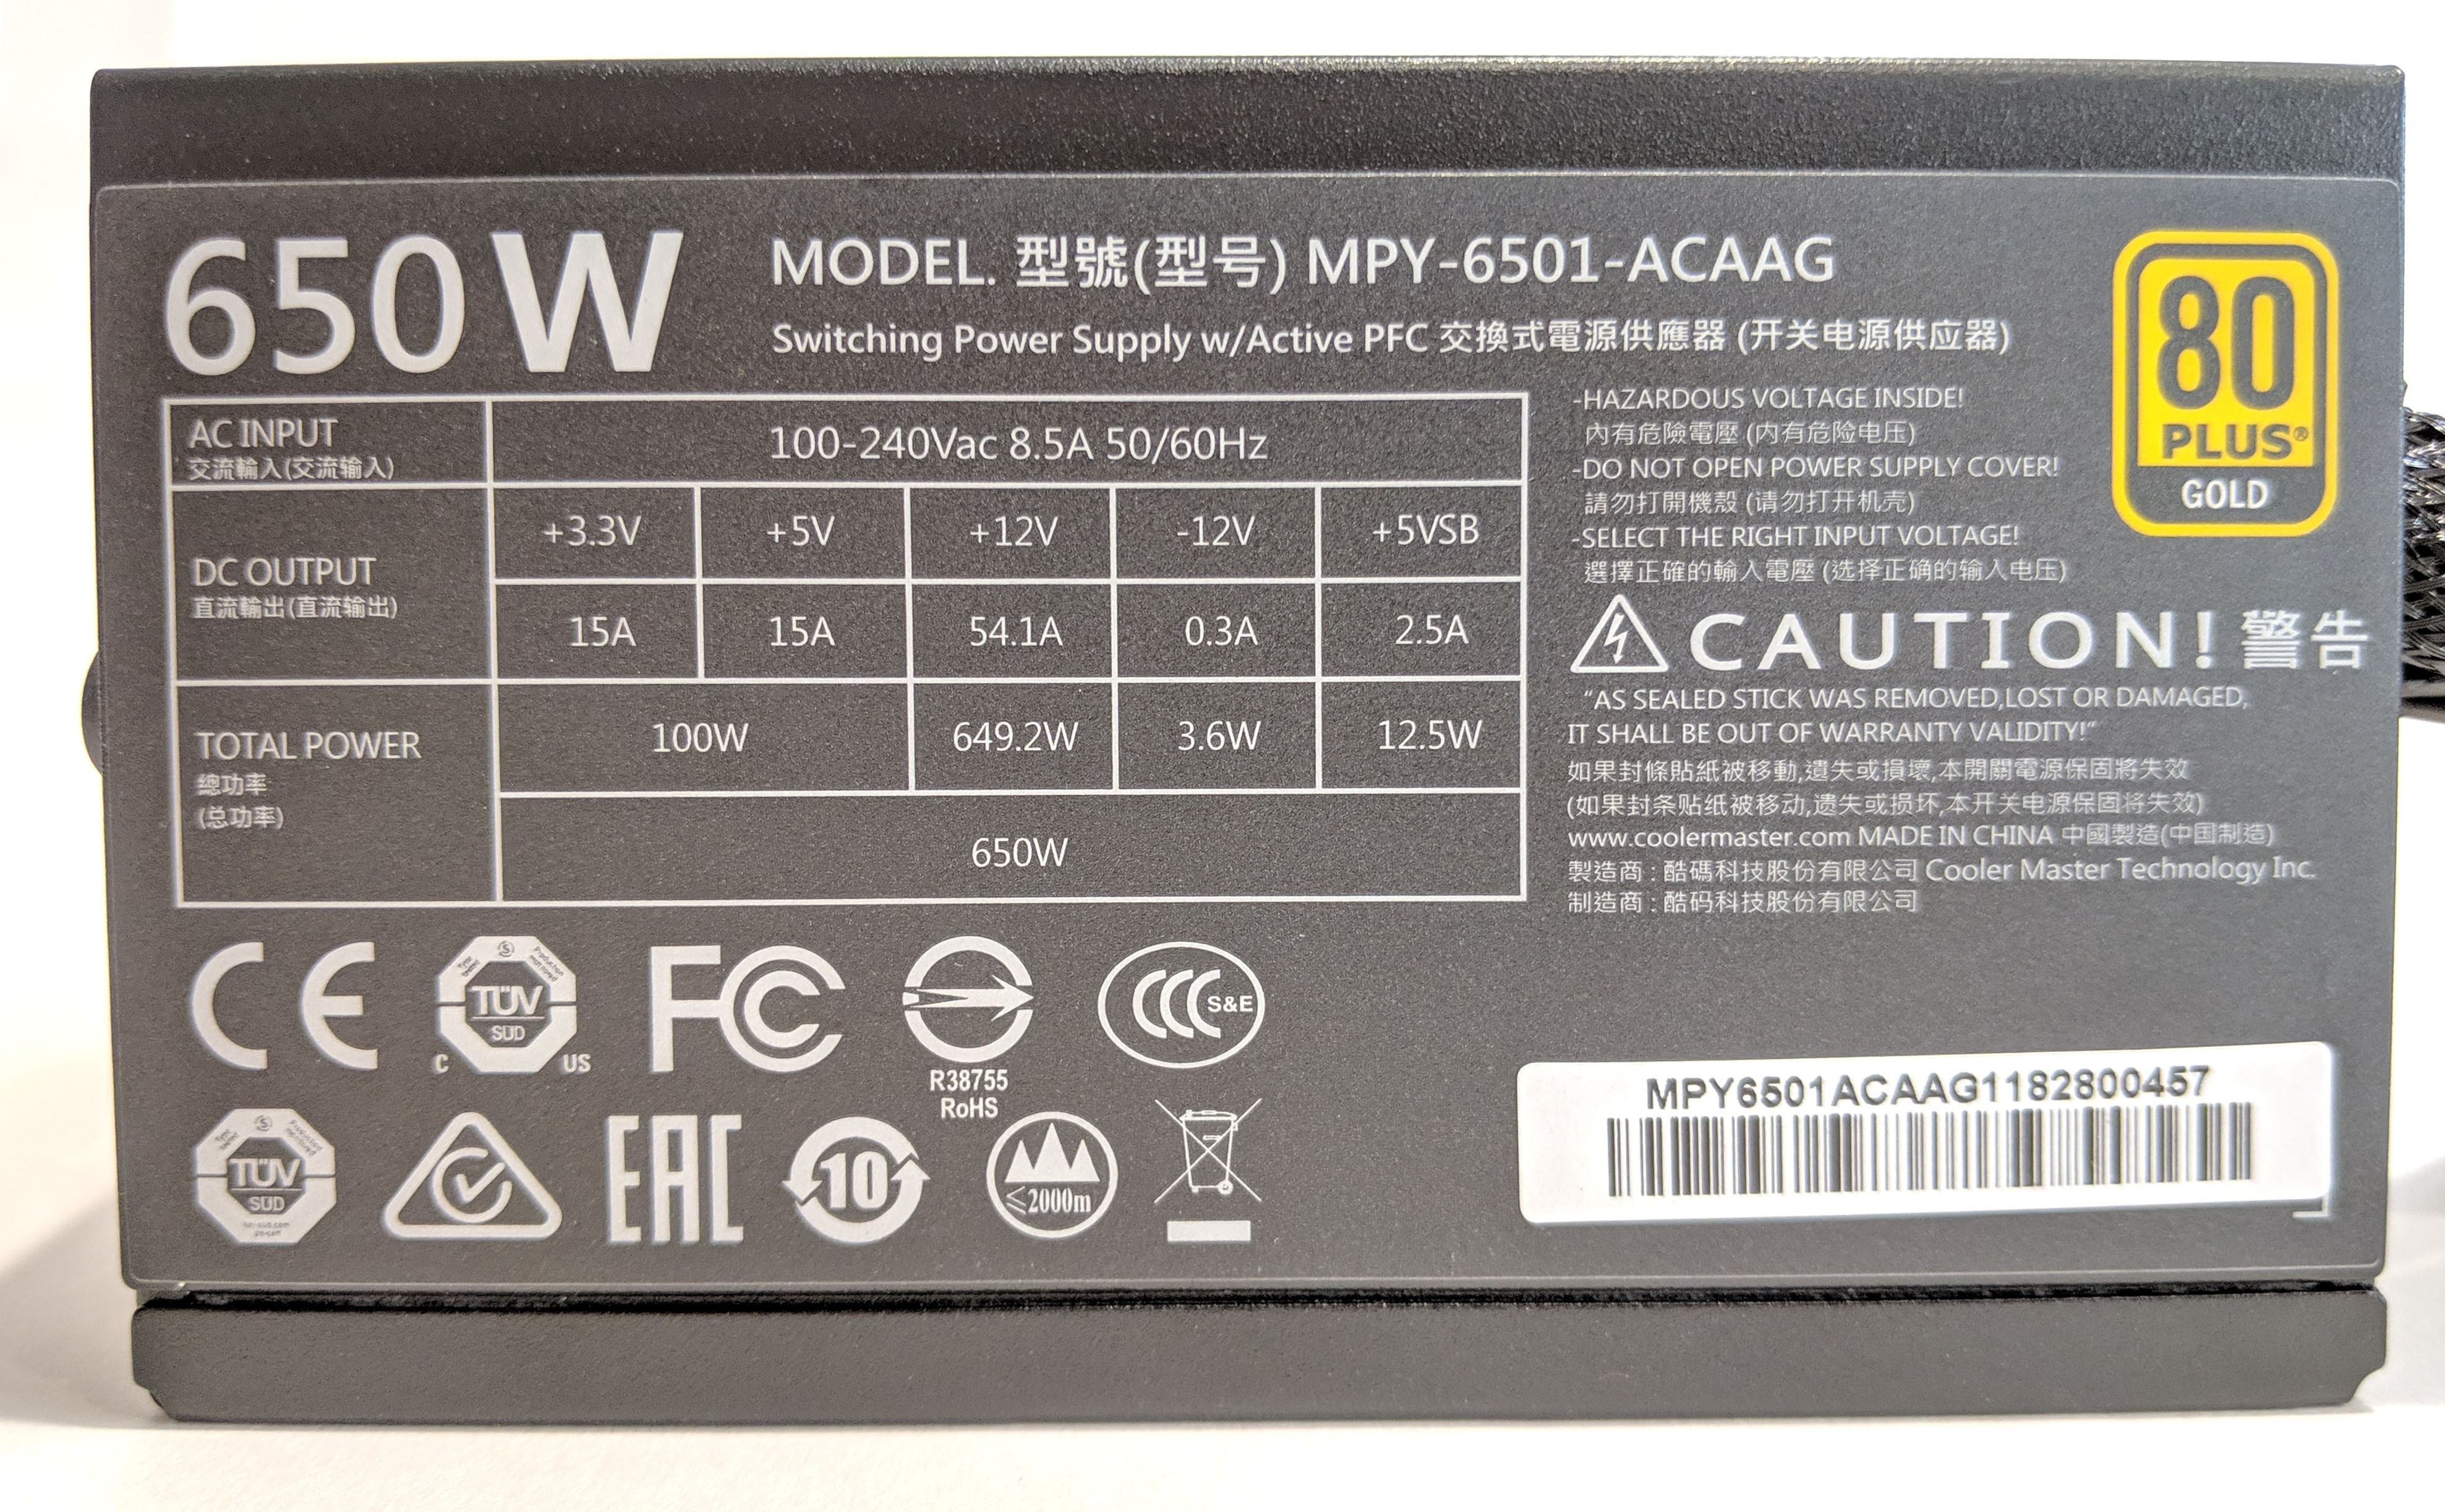 How To Check Power Supply Wattage Without Opening